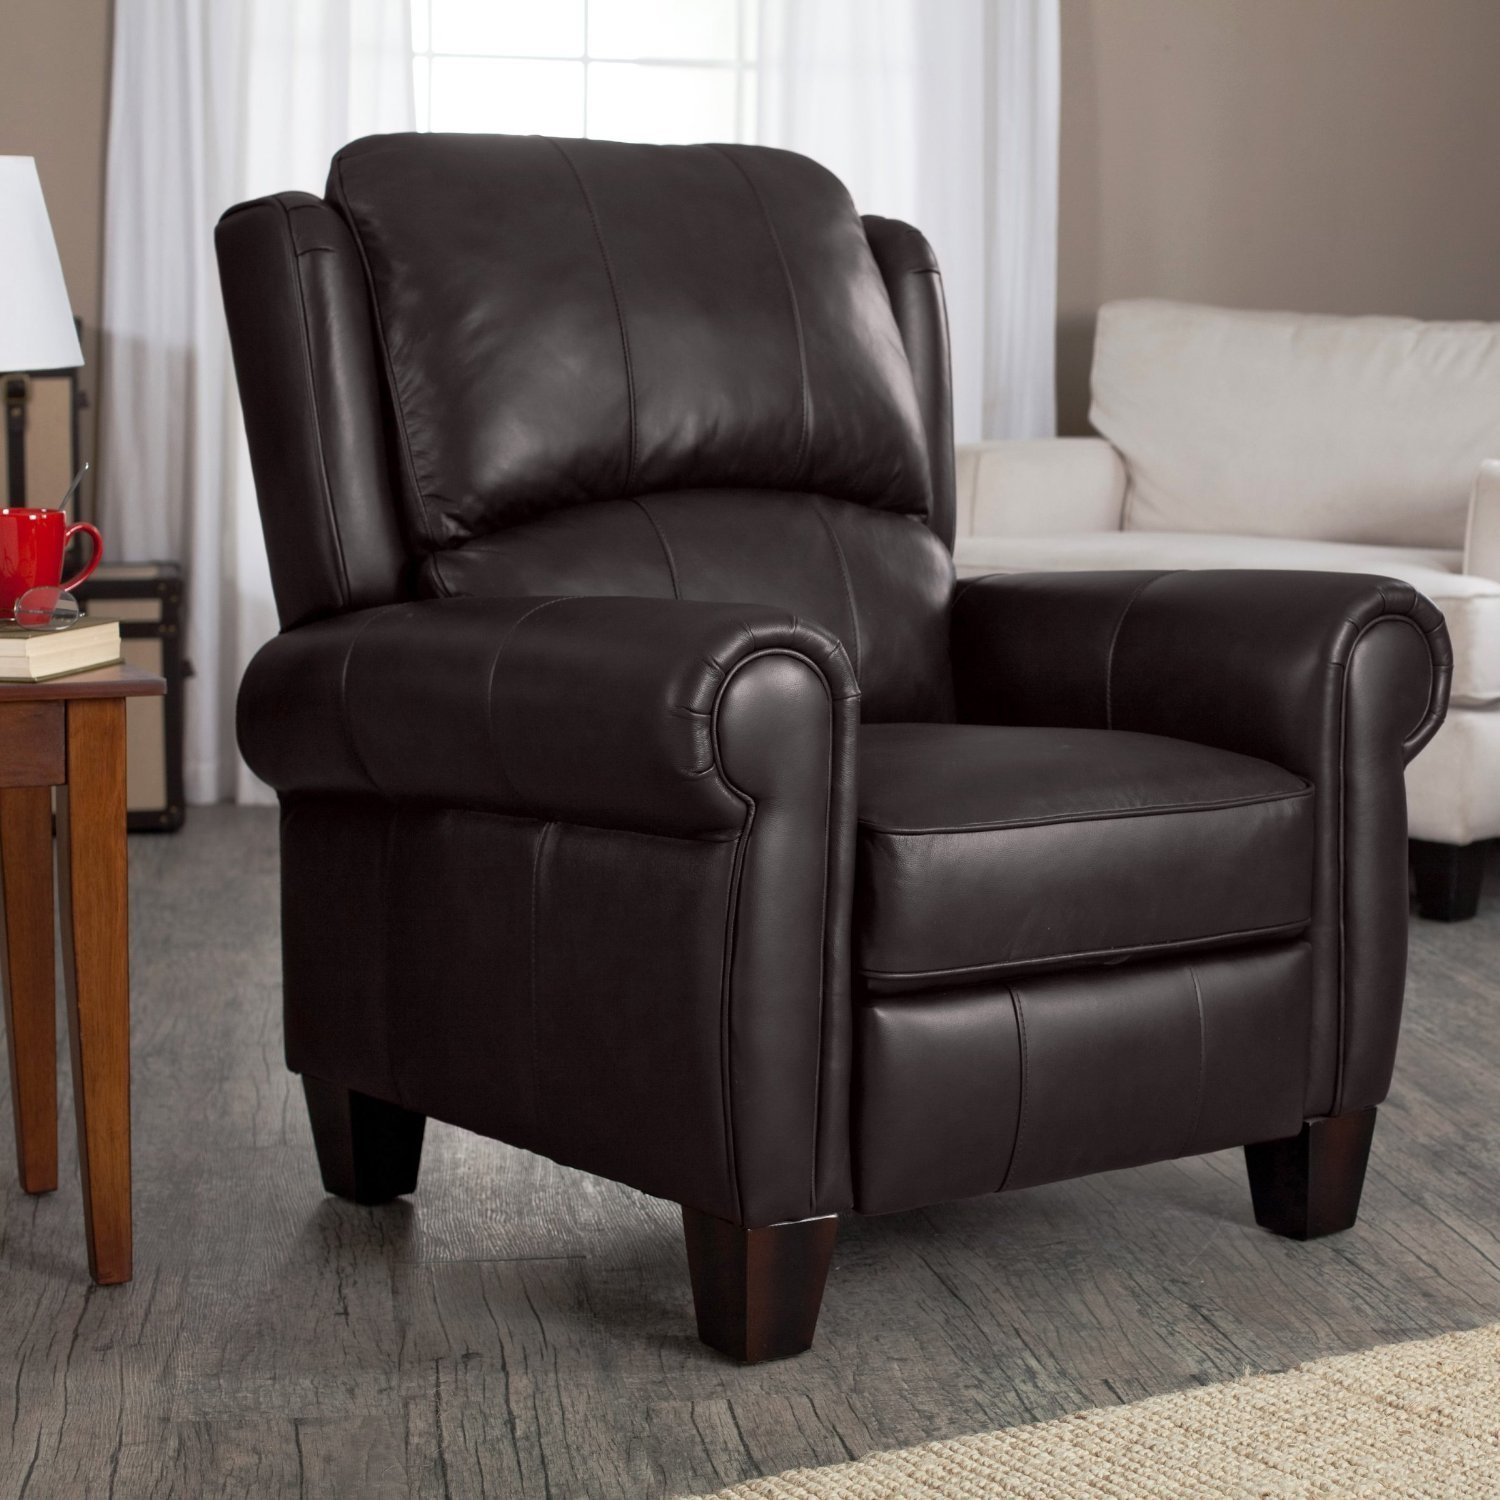 Buy Brown Leather Recliner-Living Room Furniture